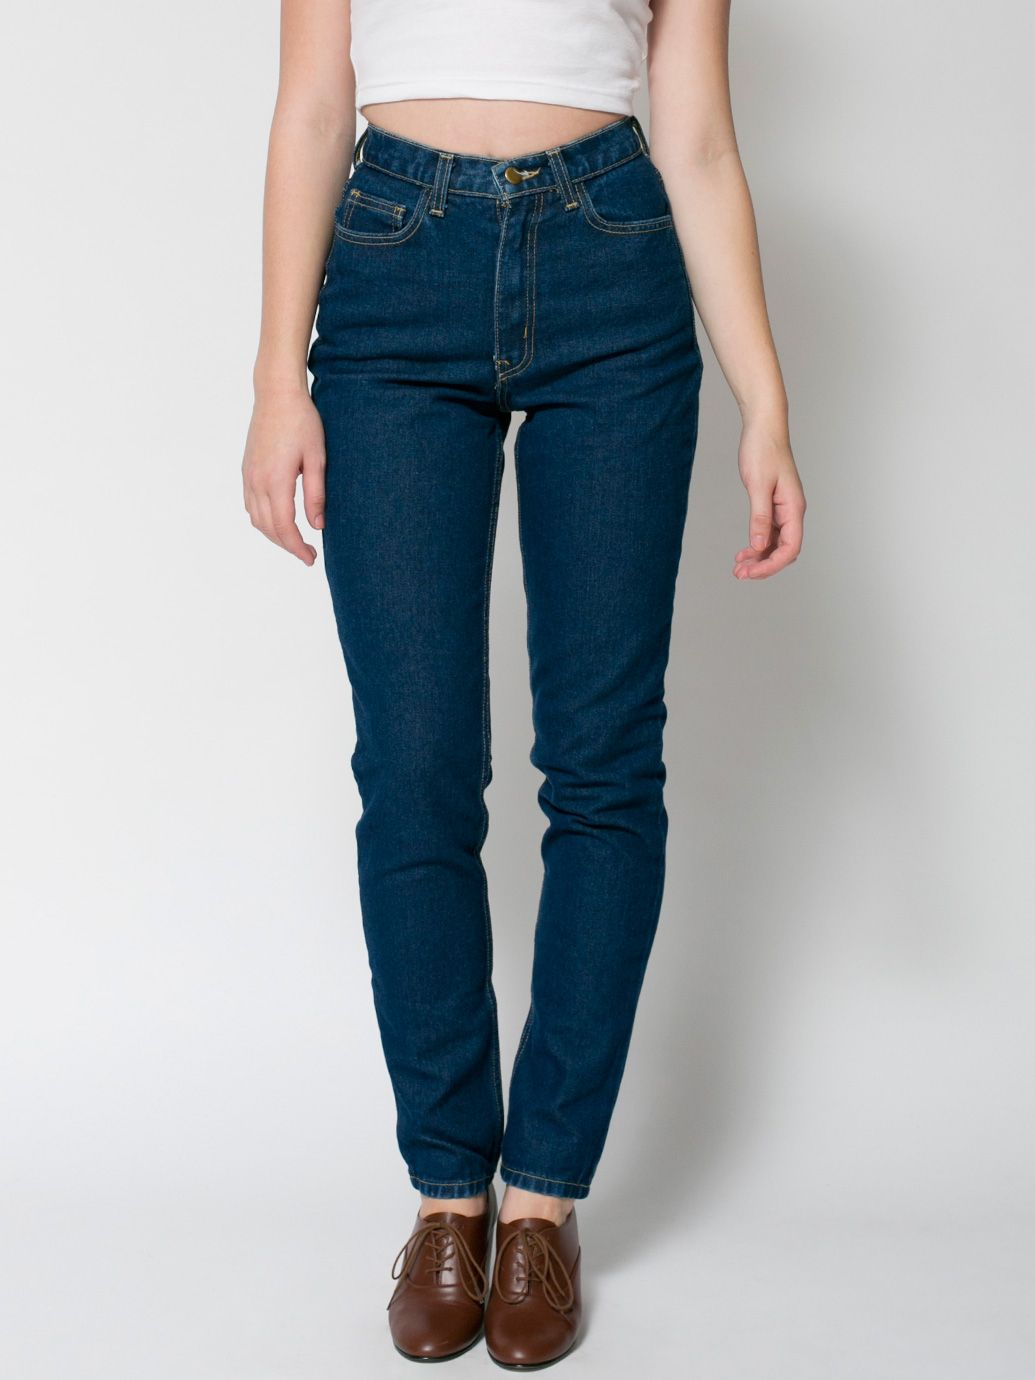 American Apparel high-waisted jeans in dark wash | Christmas Wish ...